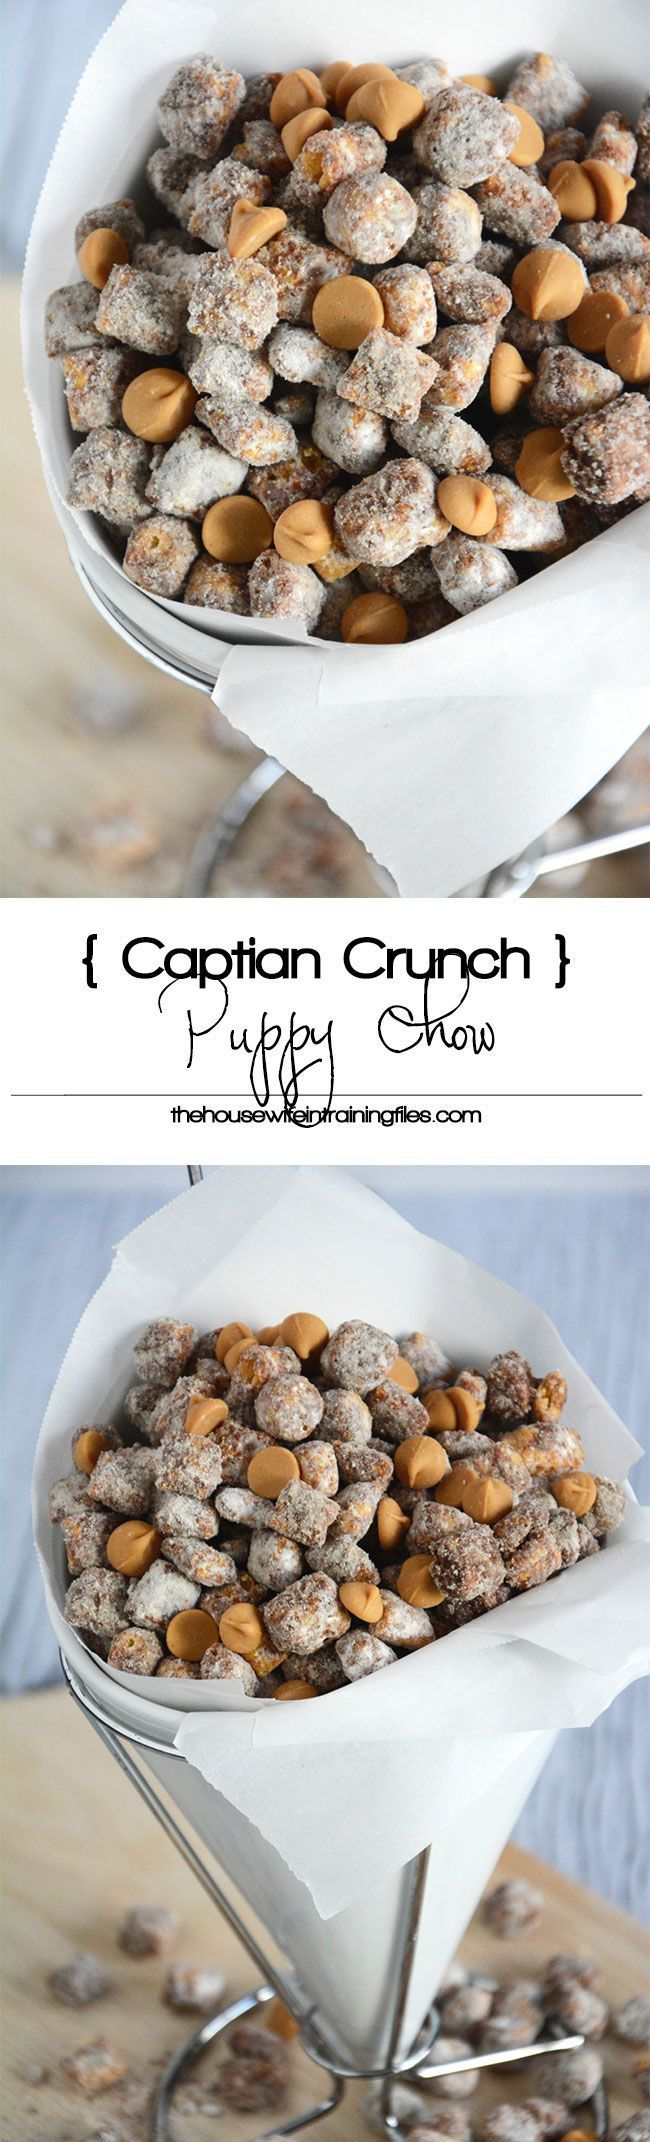 Healthy Easy Puppy Chow | Peanut Butter, 4th of July, How to Make, Best, Chocolate, Holiday, Skinny, Gift